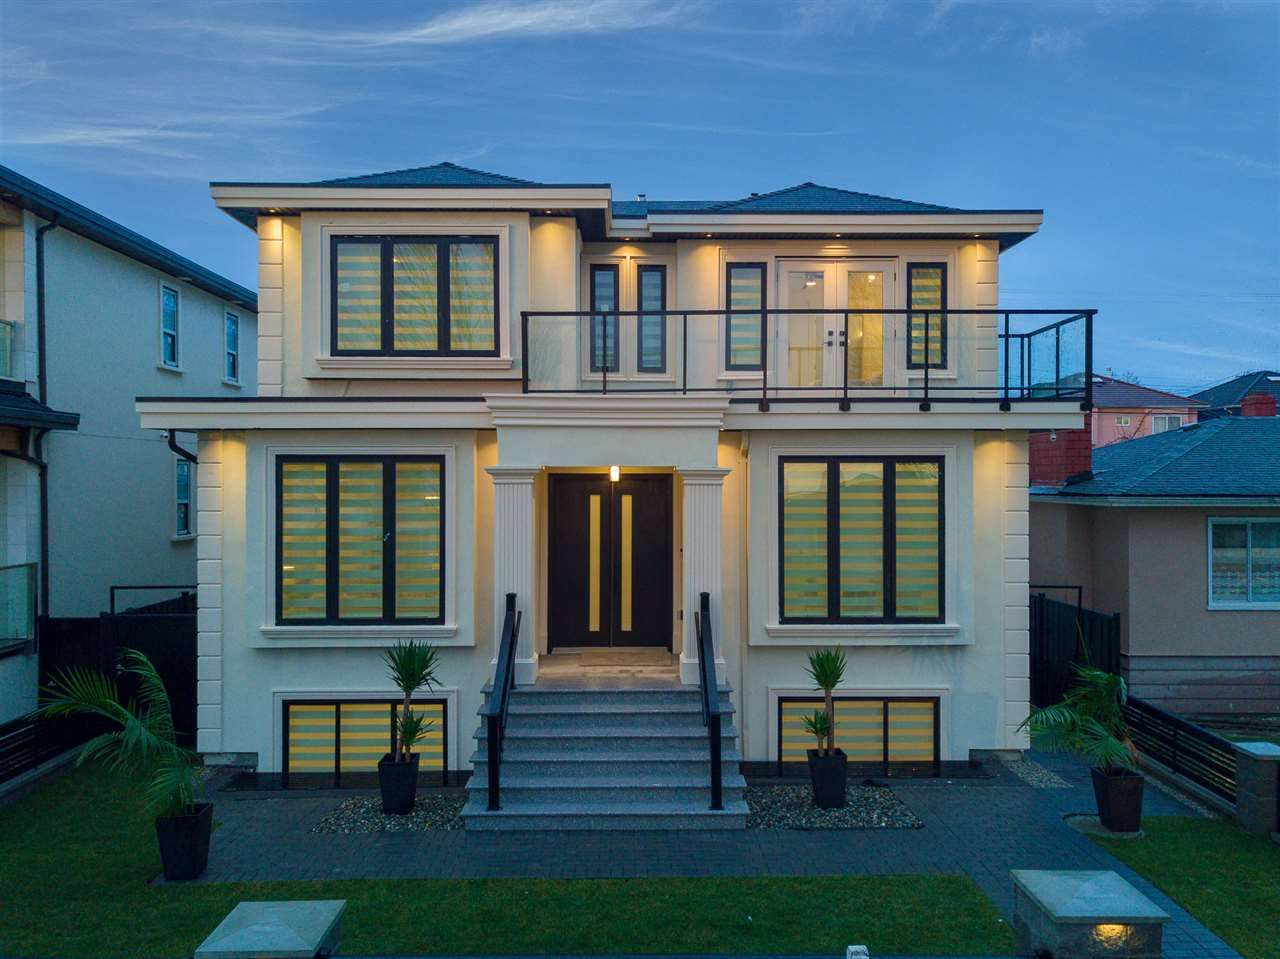 Main Photo: 1521 E 58TH AVENUE in Vancouver: Fraserview VE House for sale (Vancouver East)  : MLS®# R2234798